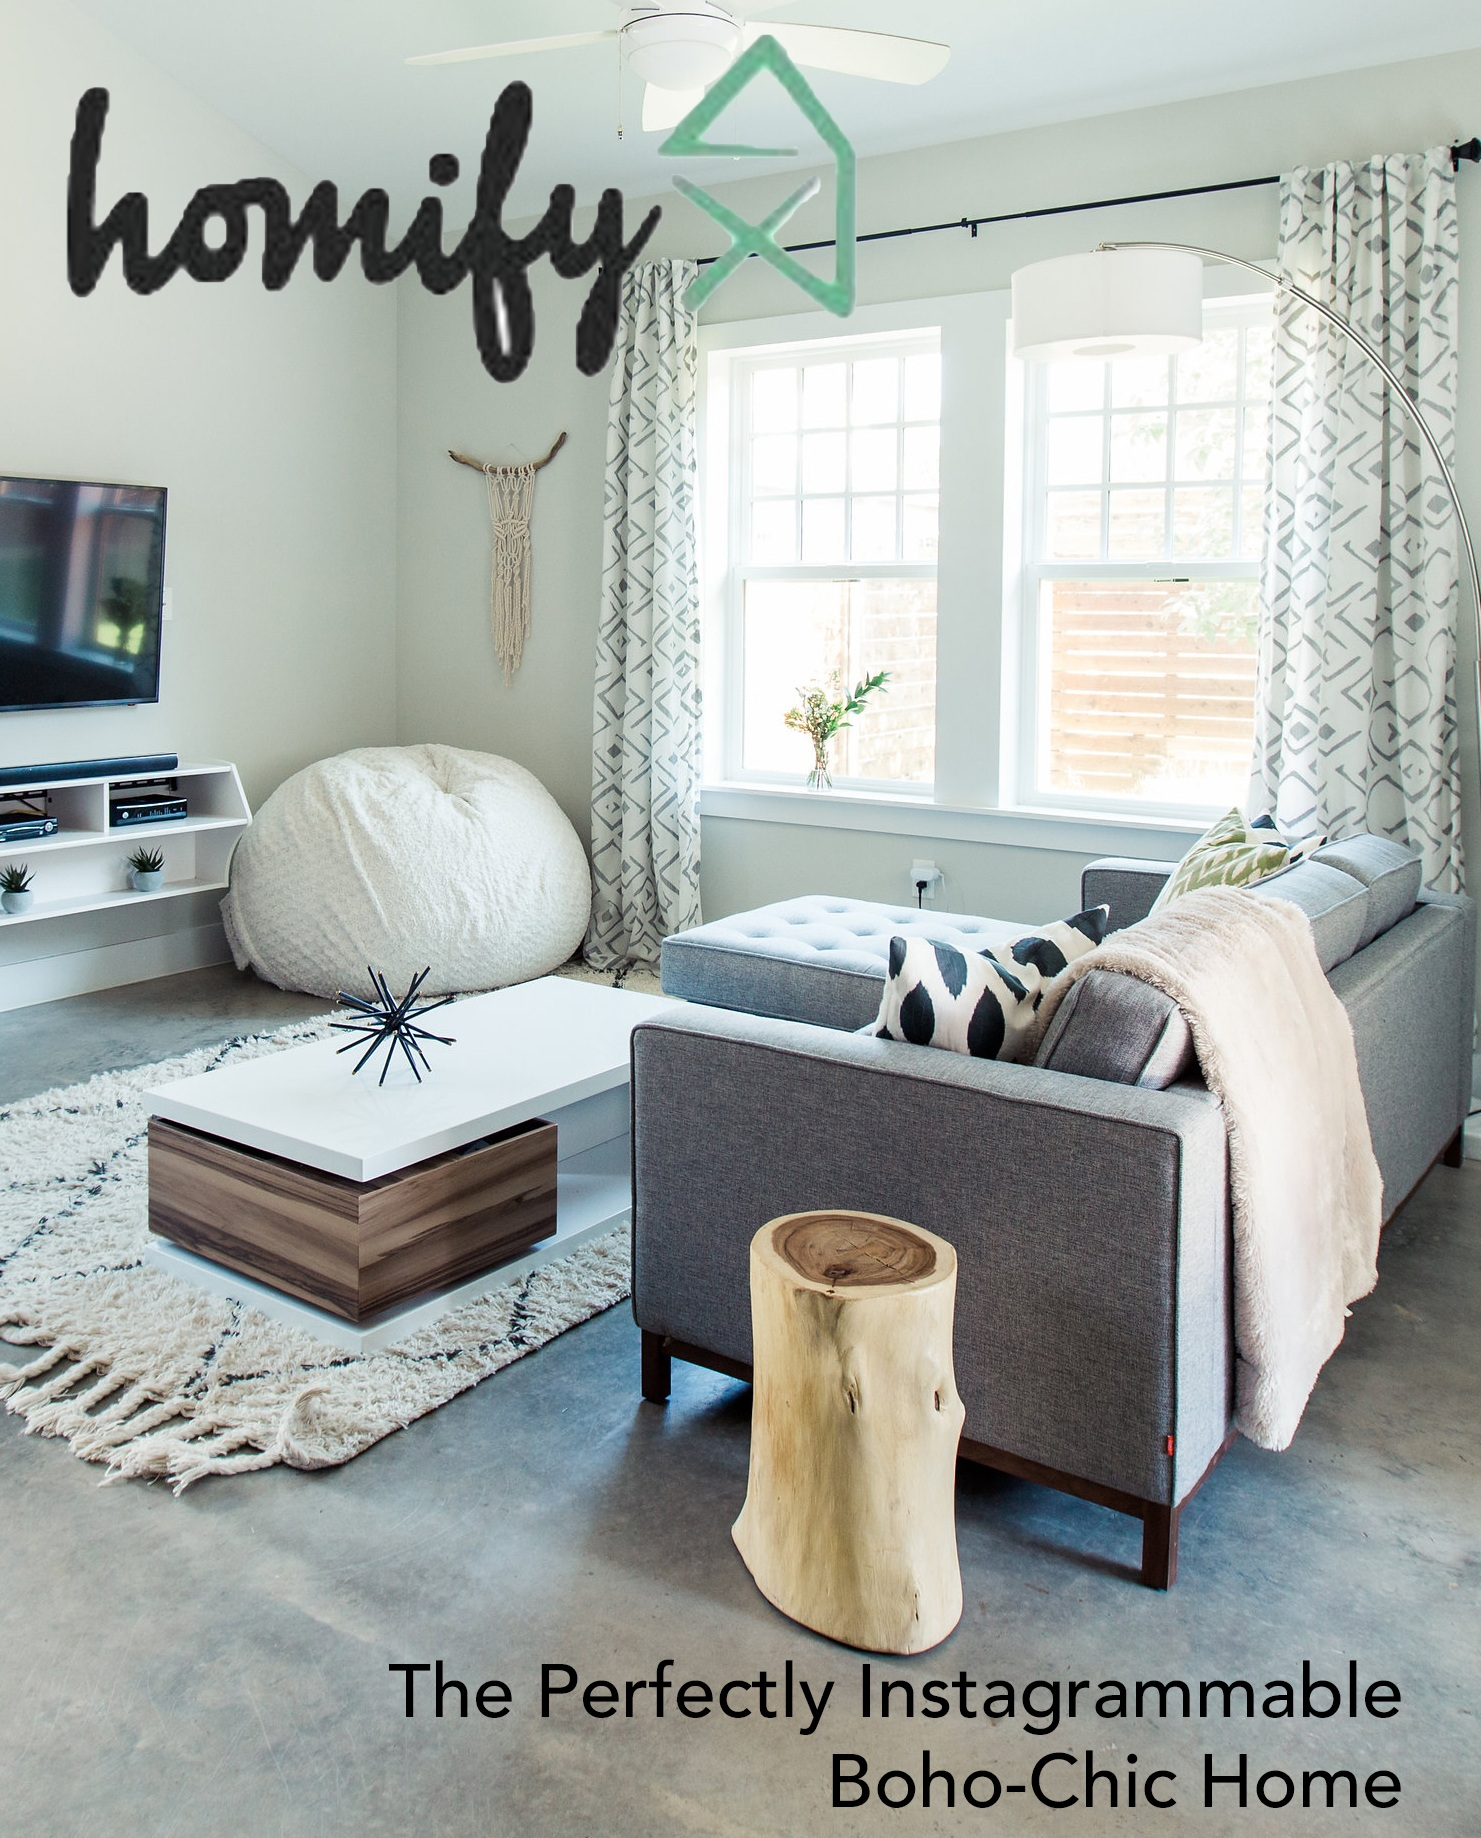 Homify: Click image to read article